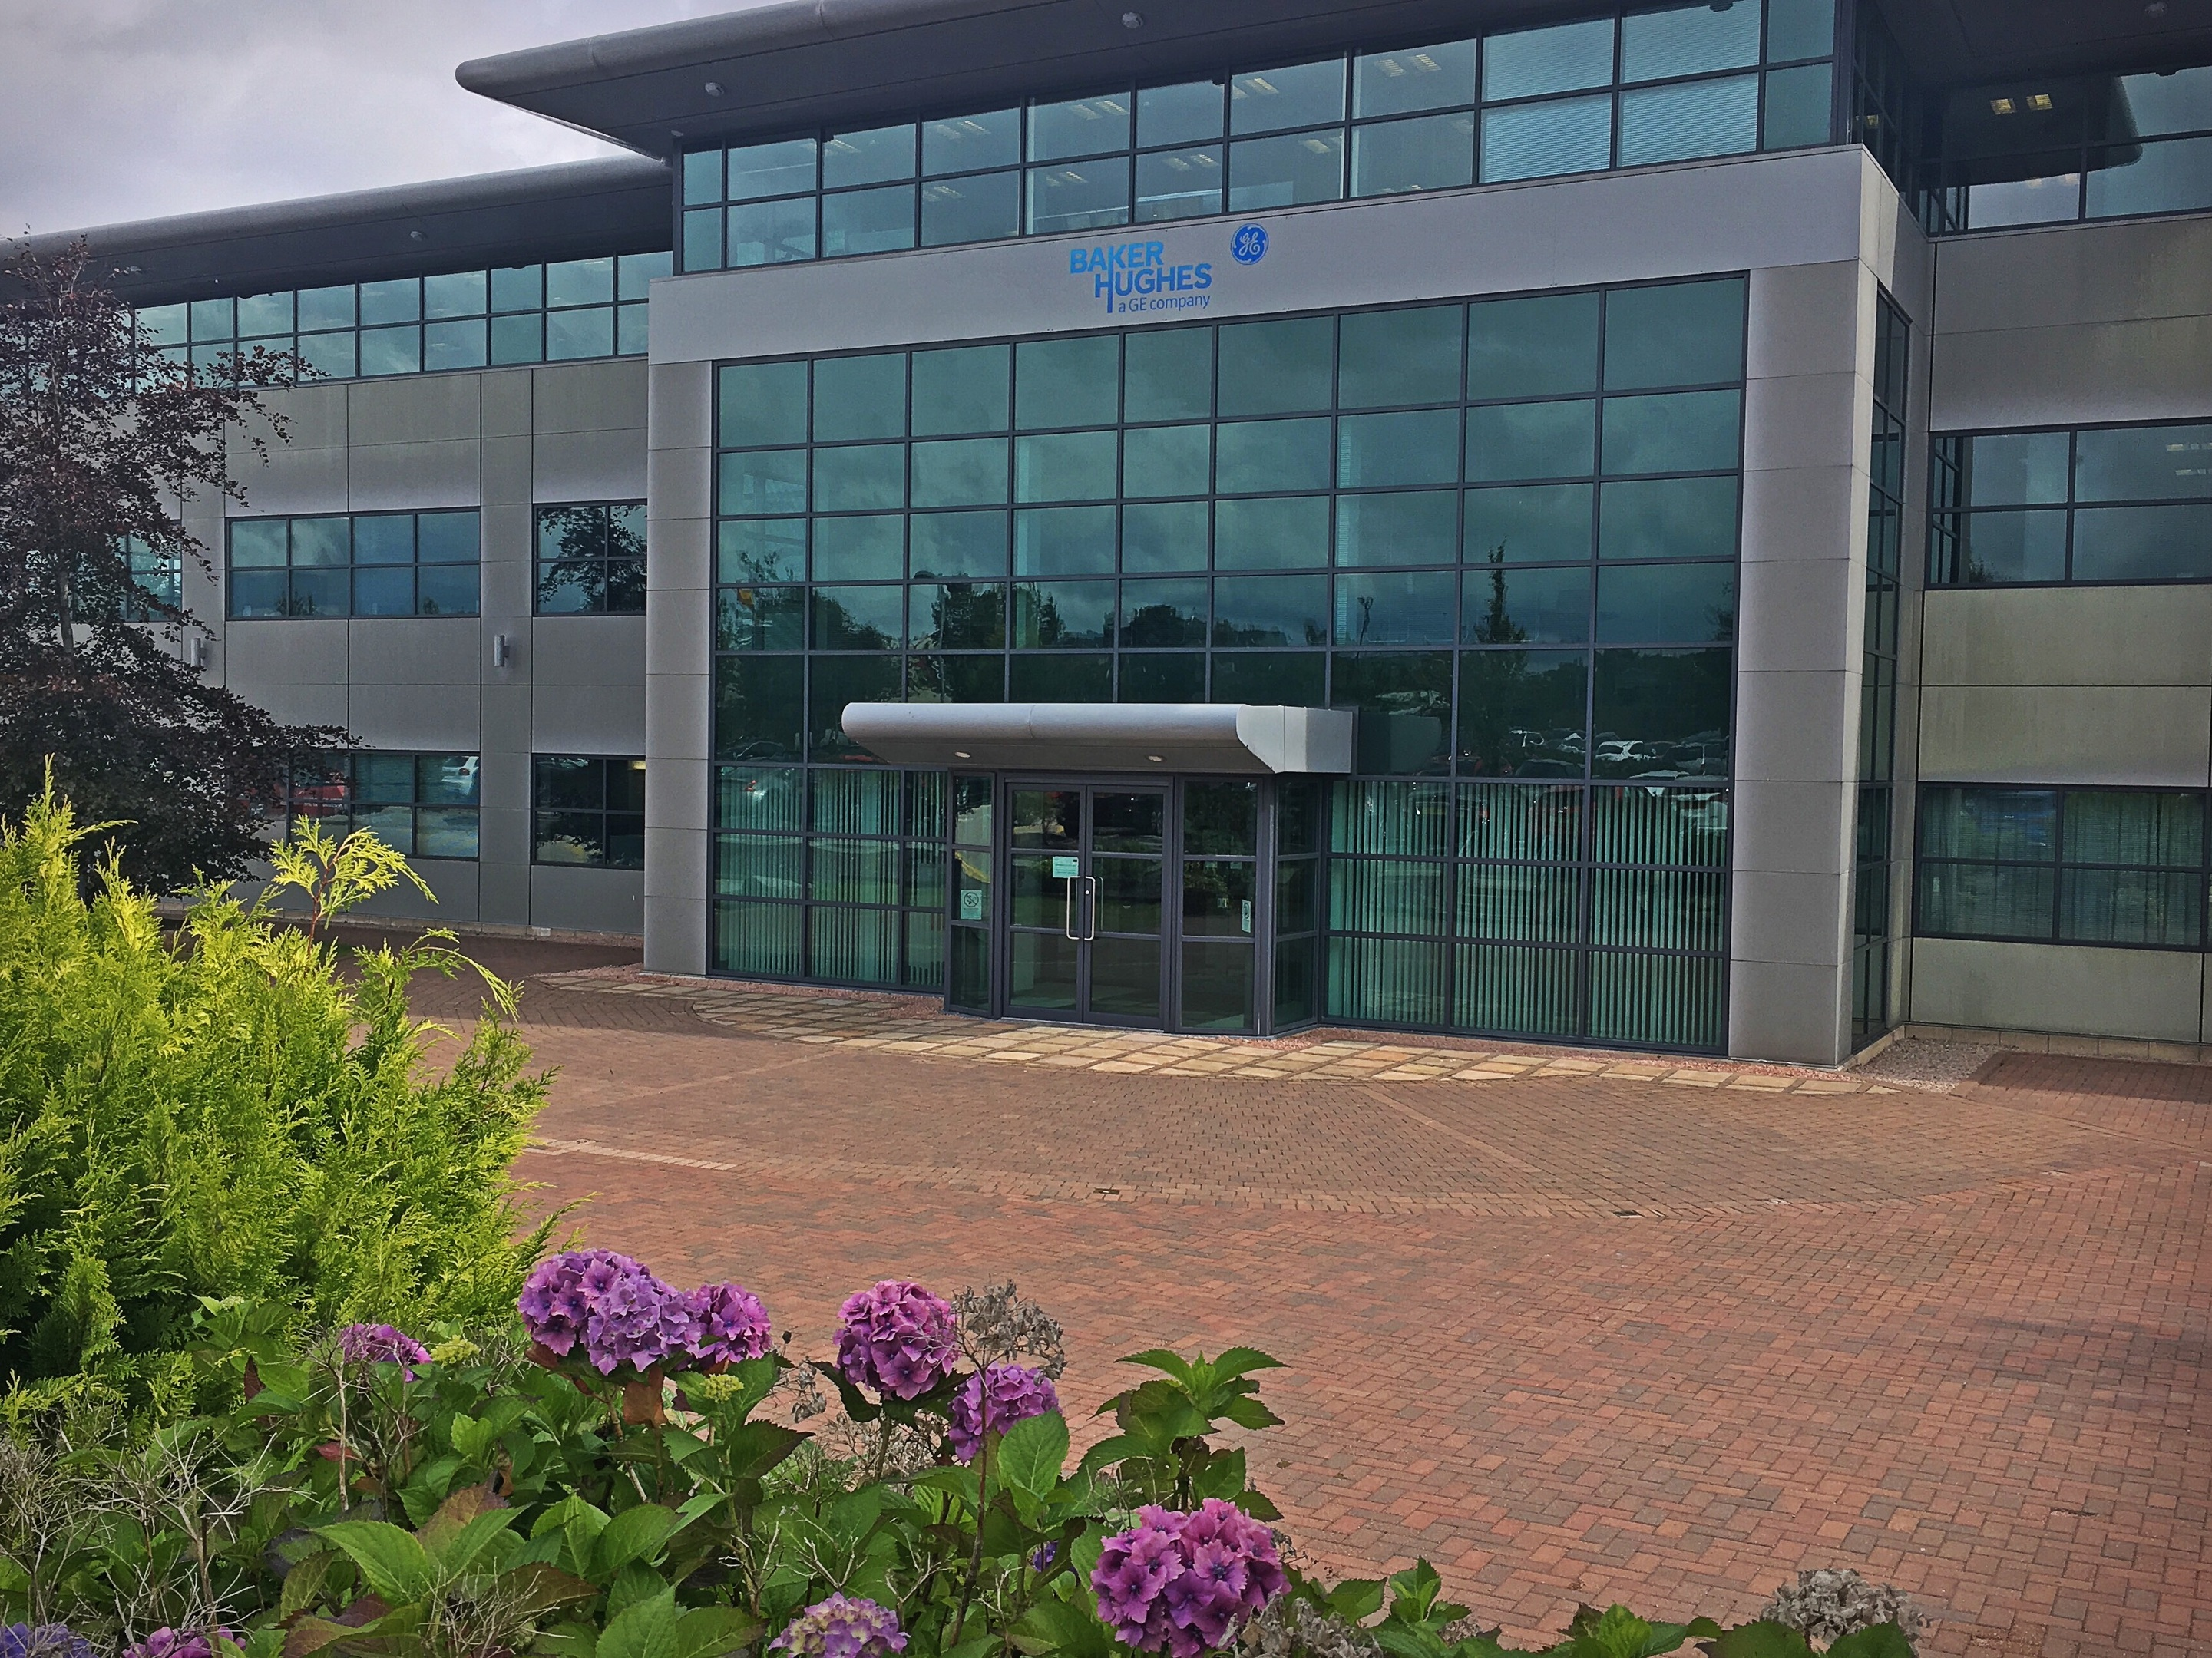 Baker Hughes, GE invests £3m in Dyce office revamp - News